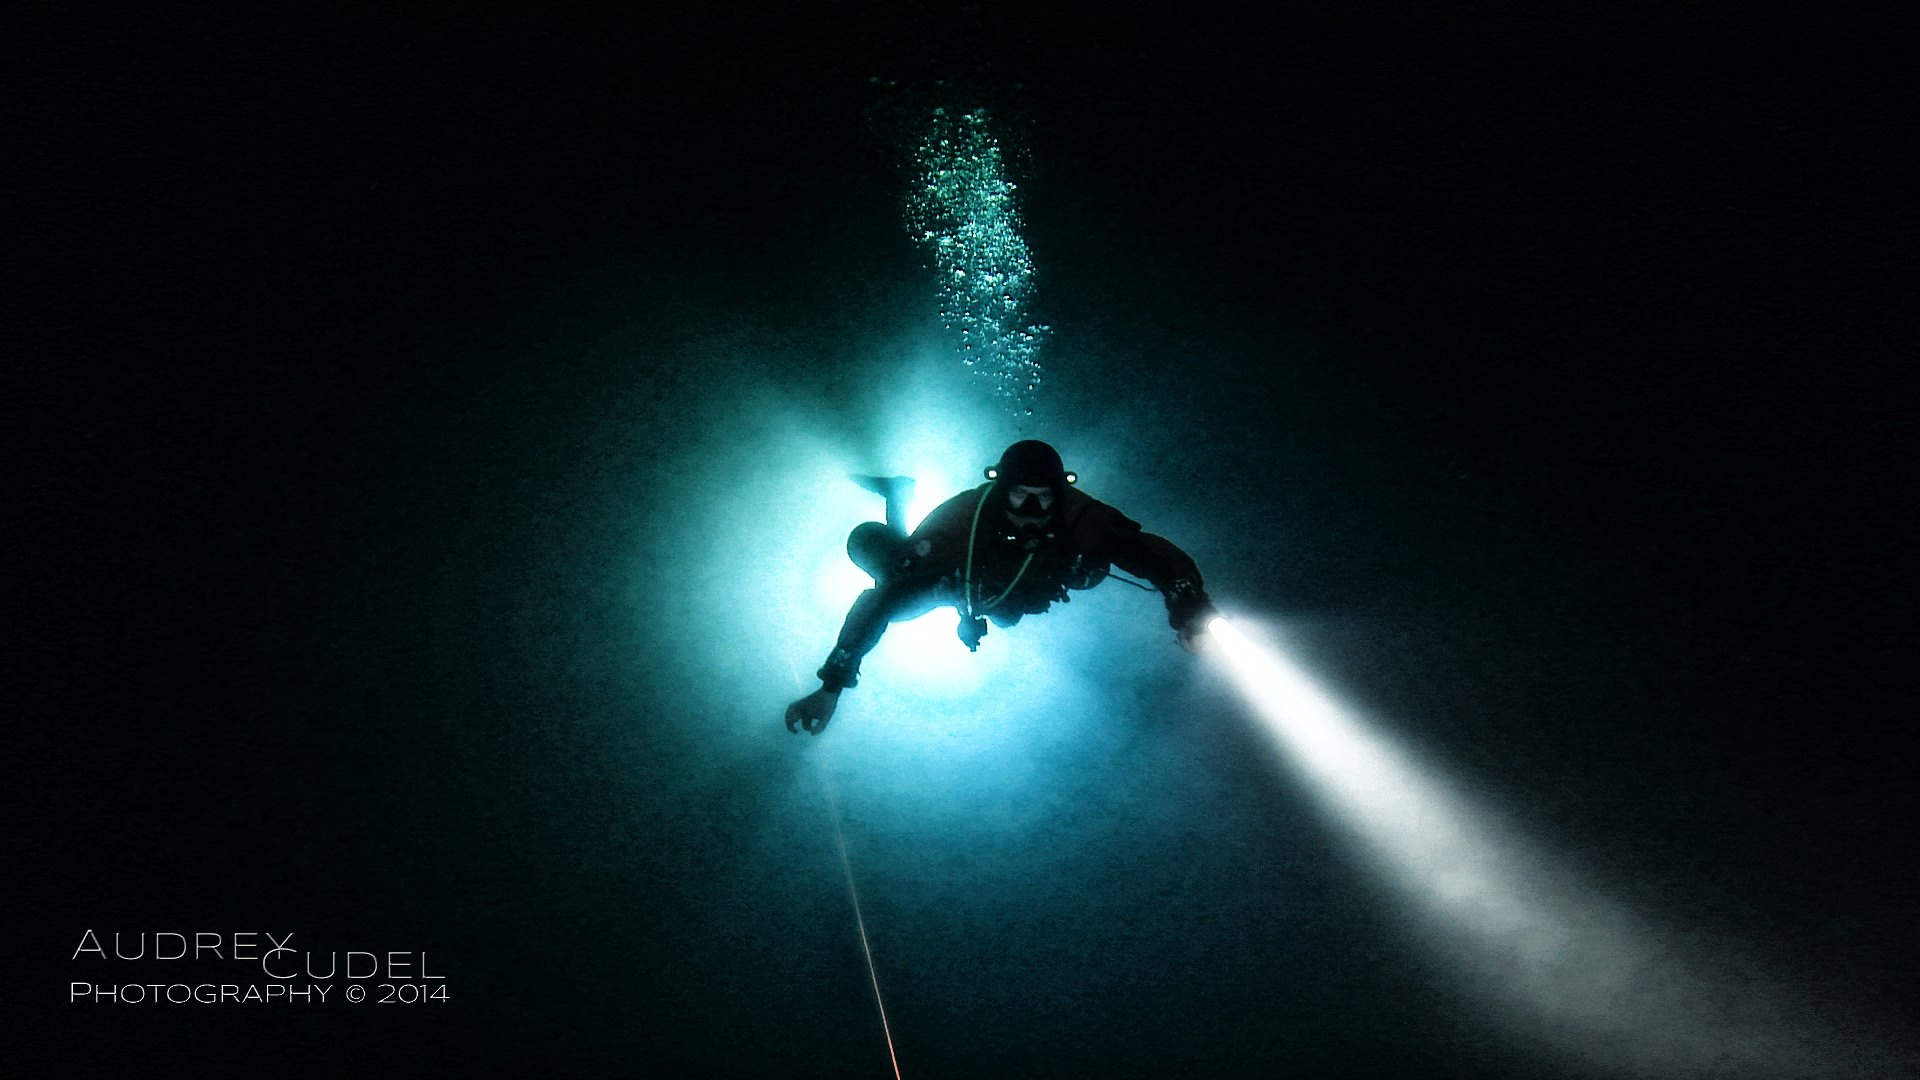 - For most of us, the draw to Cave Diving is the sense of Exploration : the privilege to go where very few will ever go or become the first human being to go where no-one has ever been. In our time, Cave Diving is potentially the last field left where a human being can be an explorer.